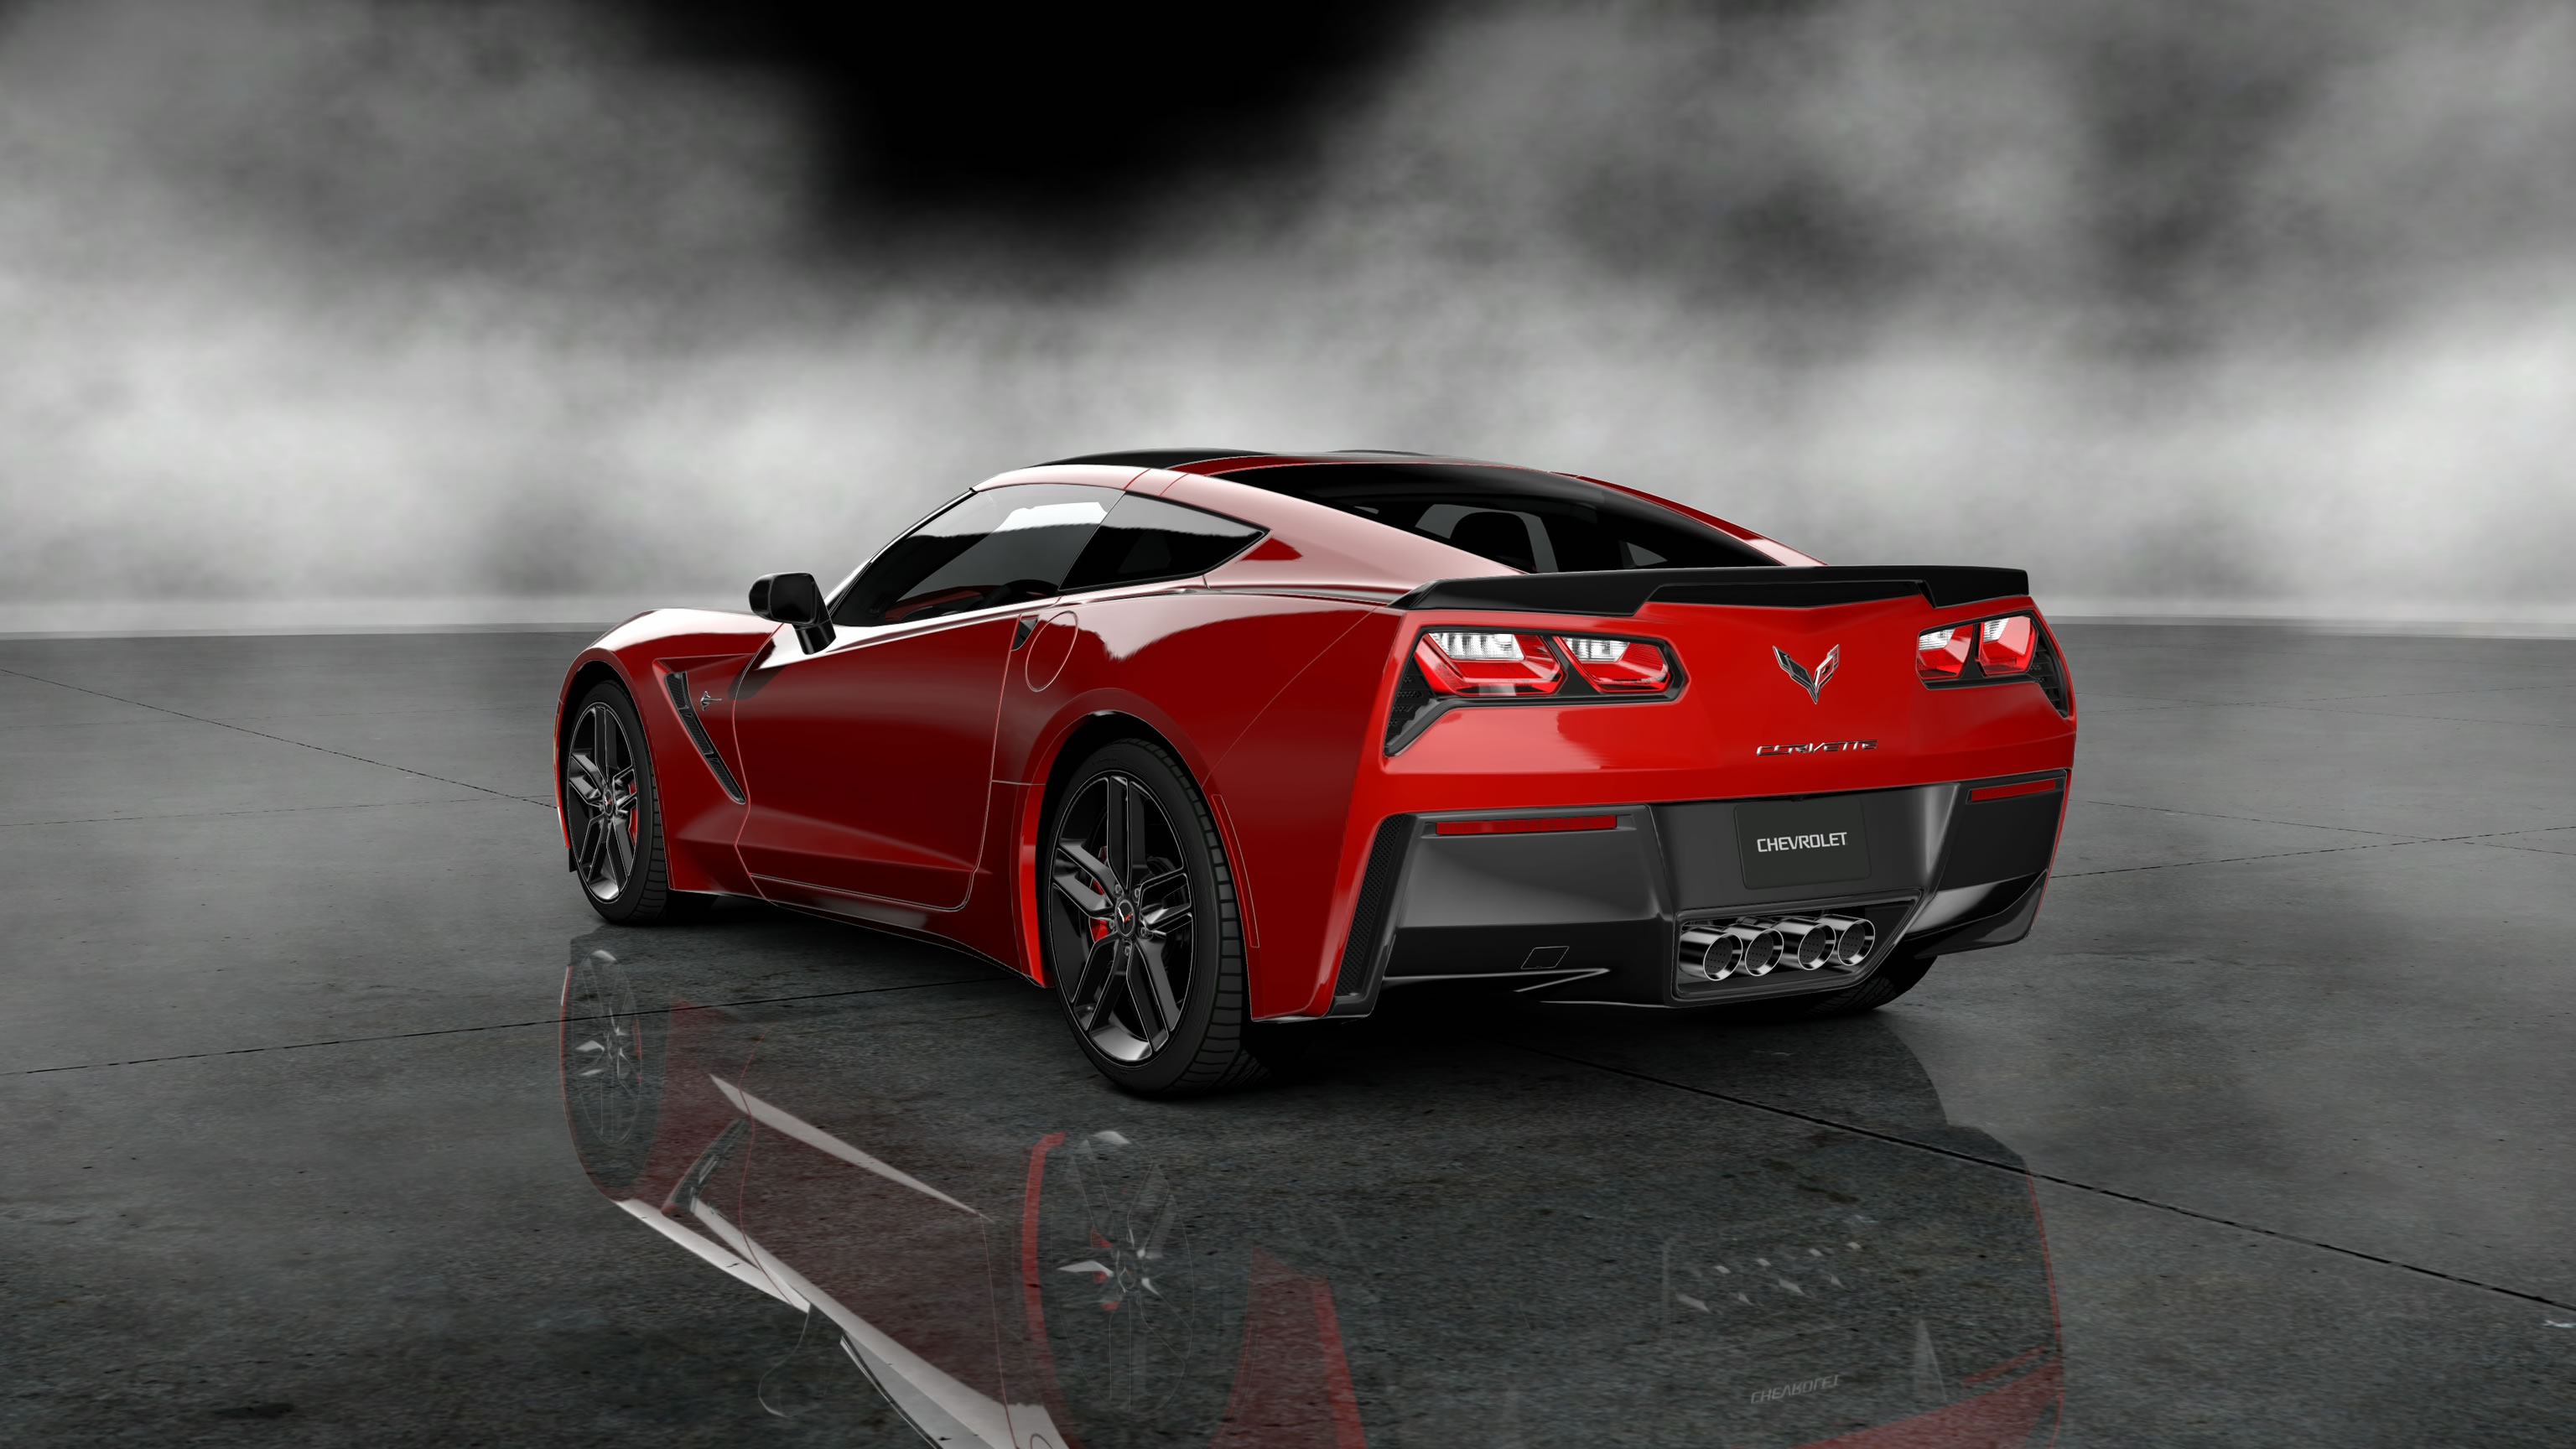 Chevrolet Corvette C7 Sting Hd Wallpapers 3072x1728